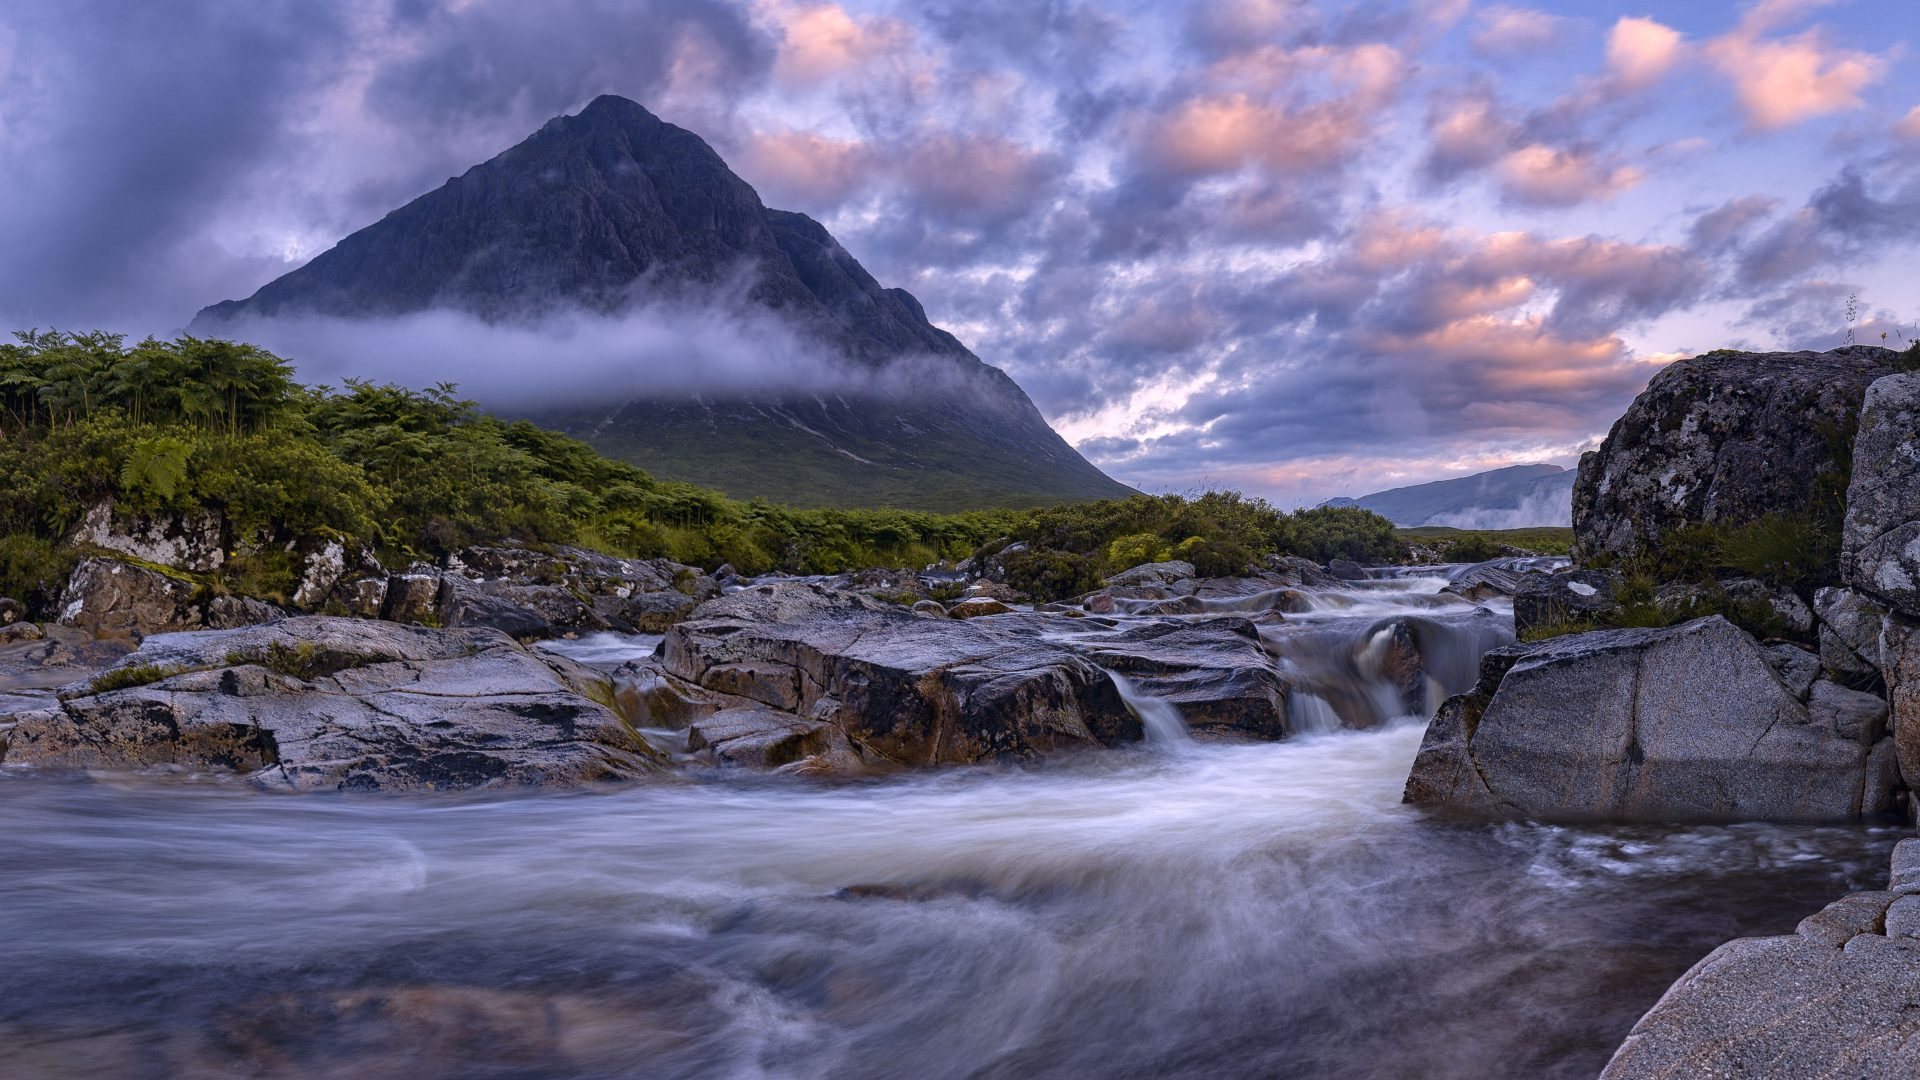 Iphone X Wallpaper Size Perspective Buachaille Etive Mor Glencoe Scotland View From The River